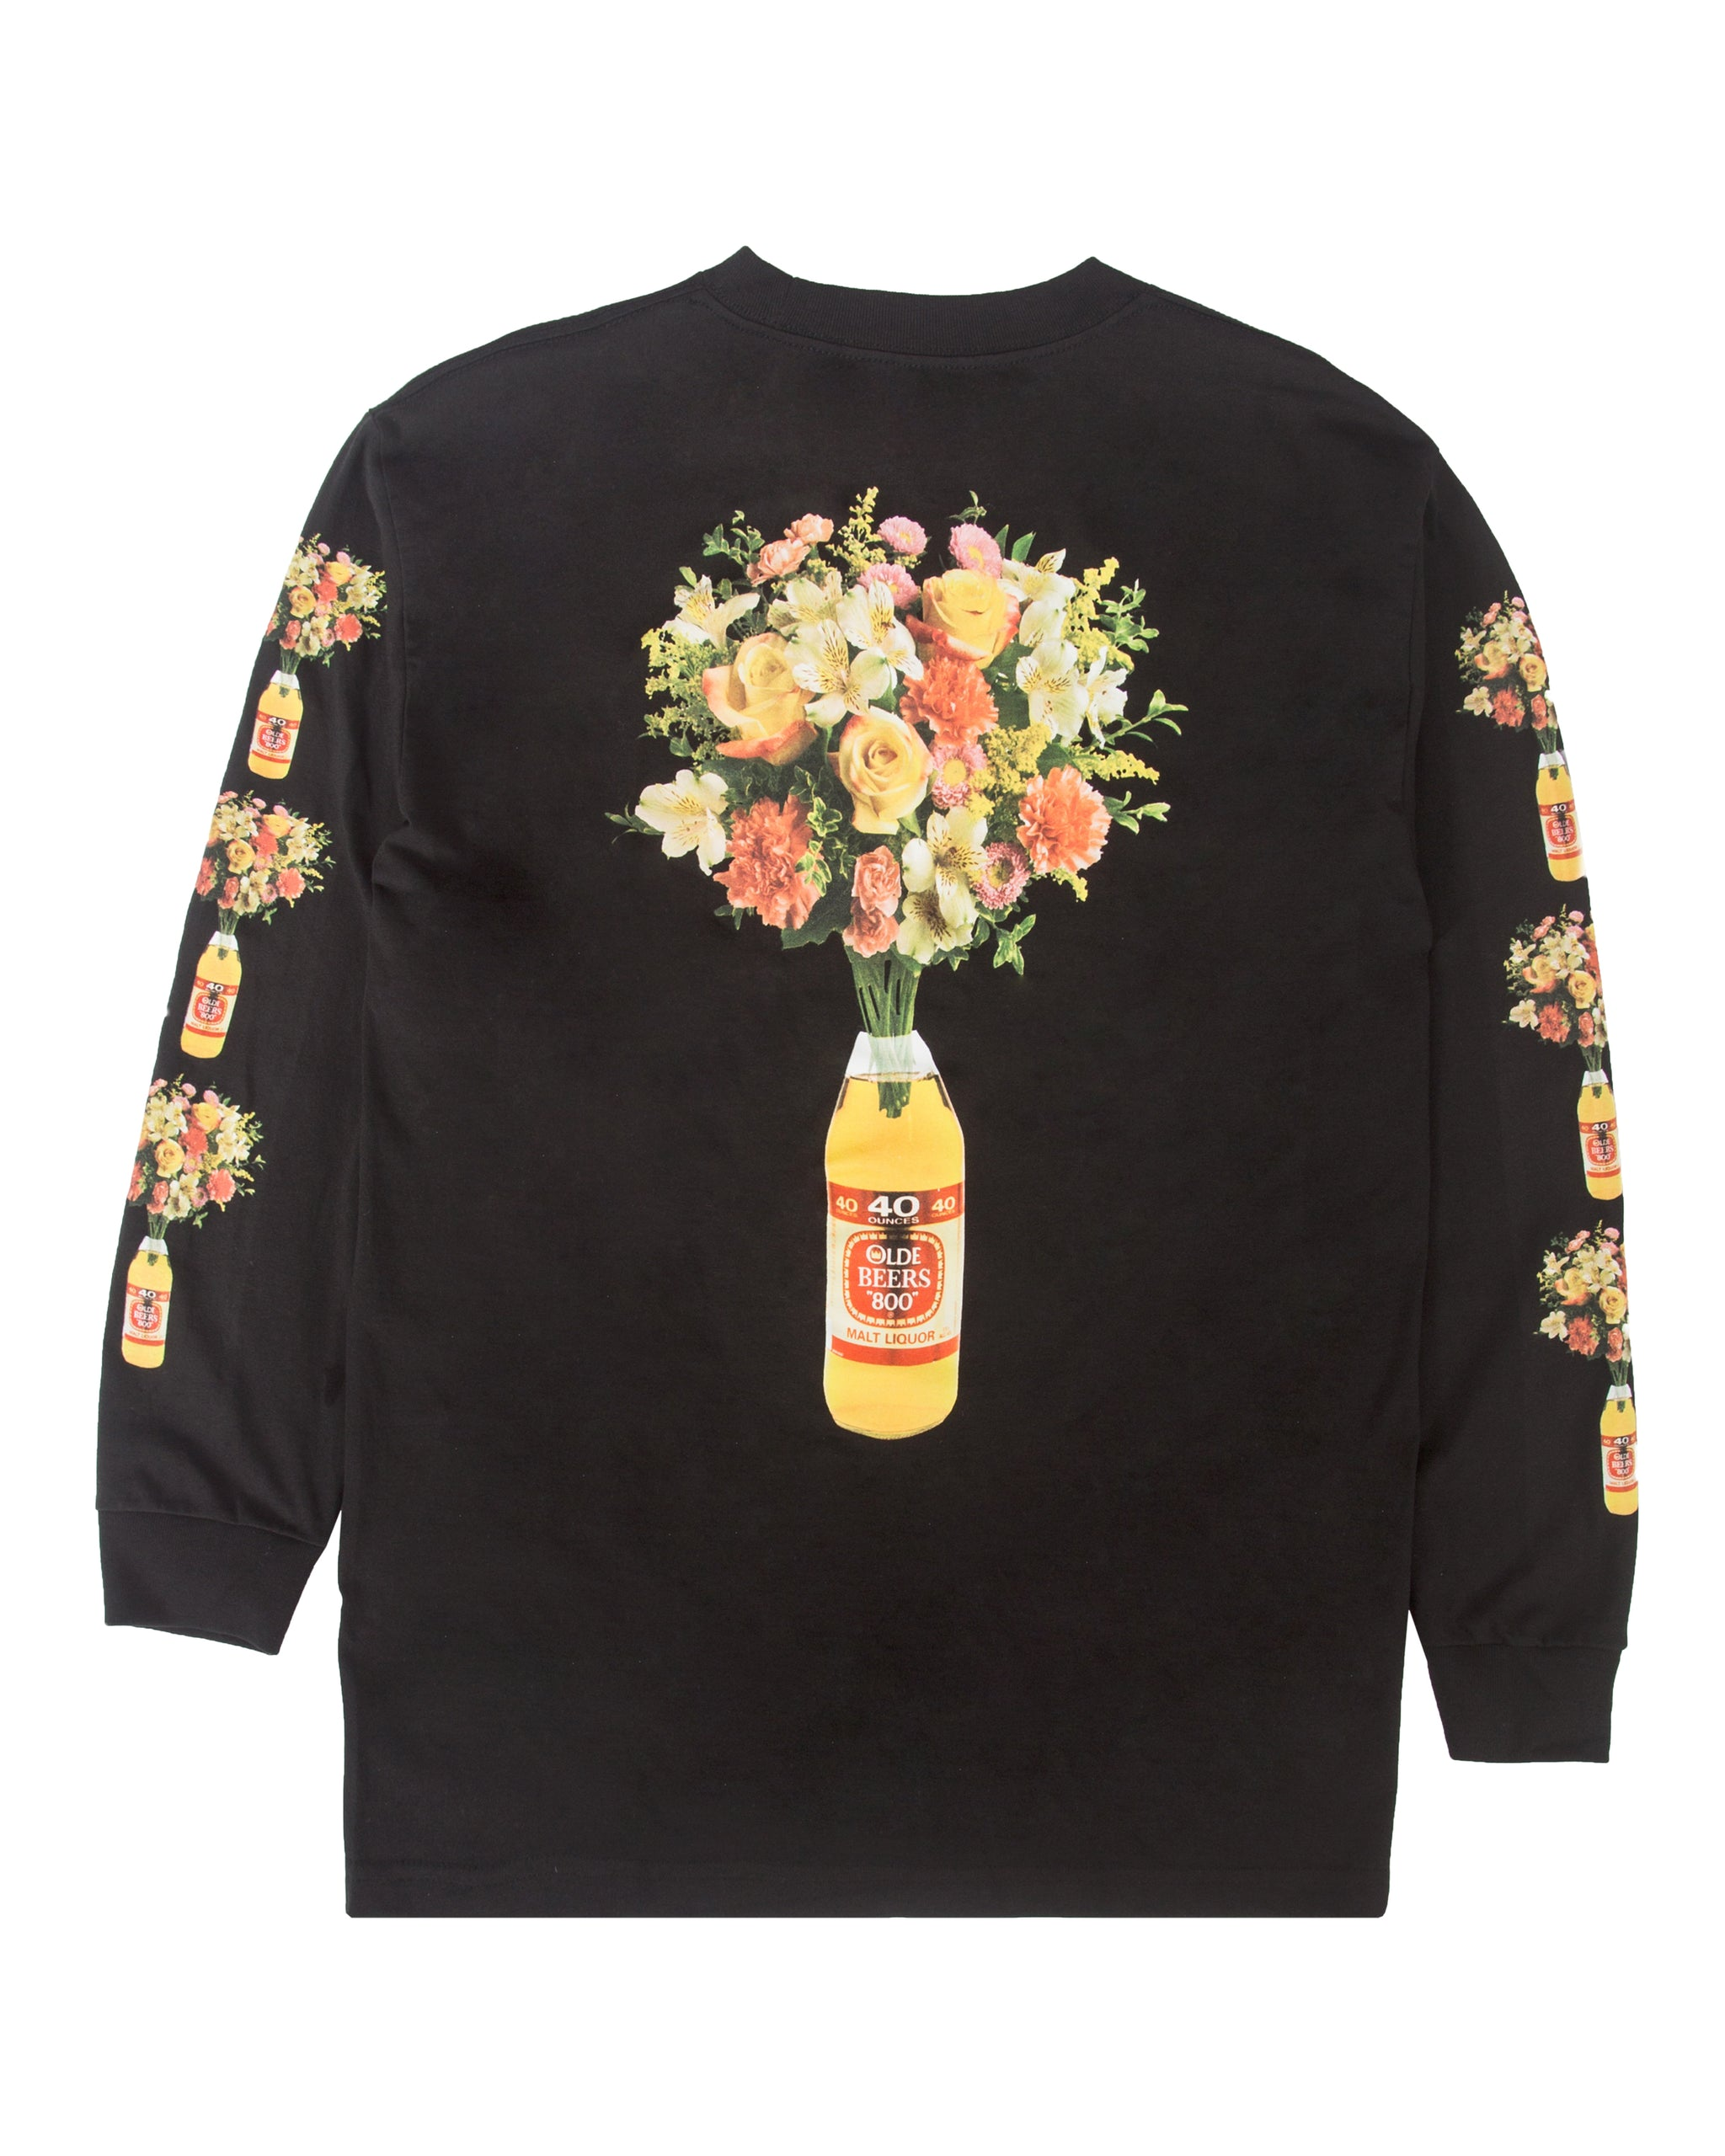 40oz of Beauty Longsleeve Tee, Black